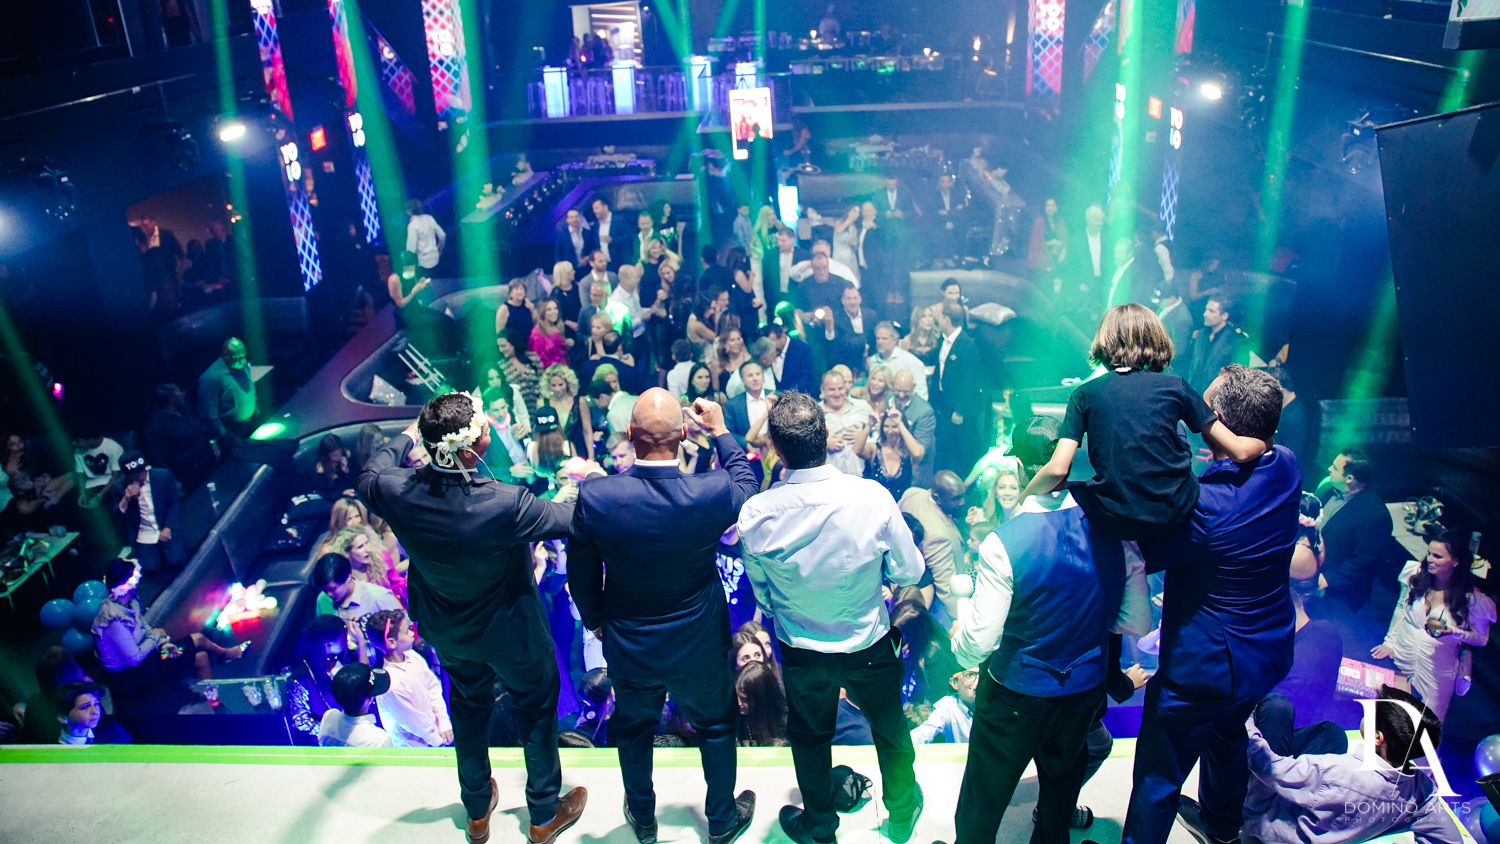 stage view at Nightclub Bat Mitzvah at LIV in Fontainebleau Miami by Domino Arts Photography